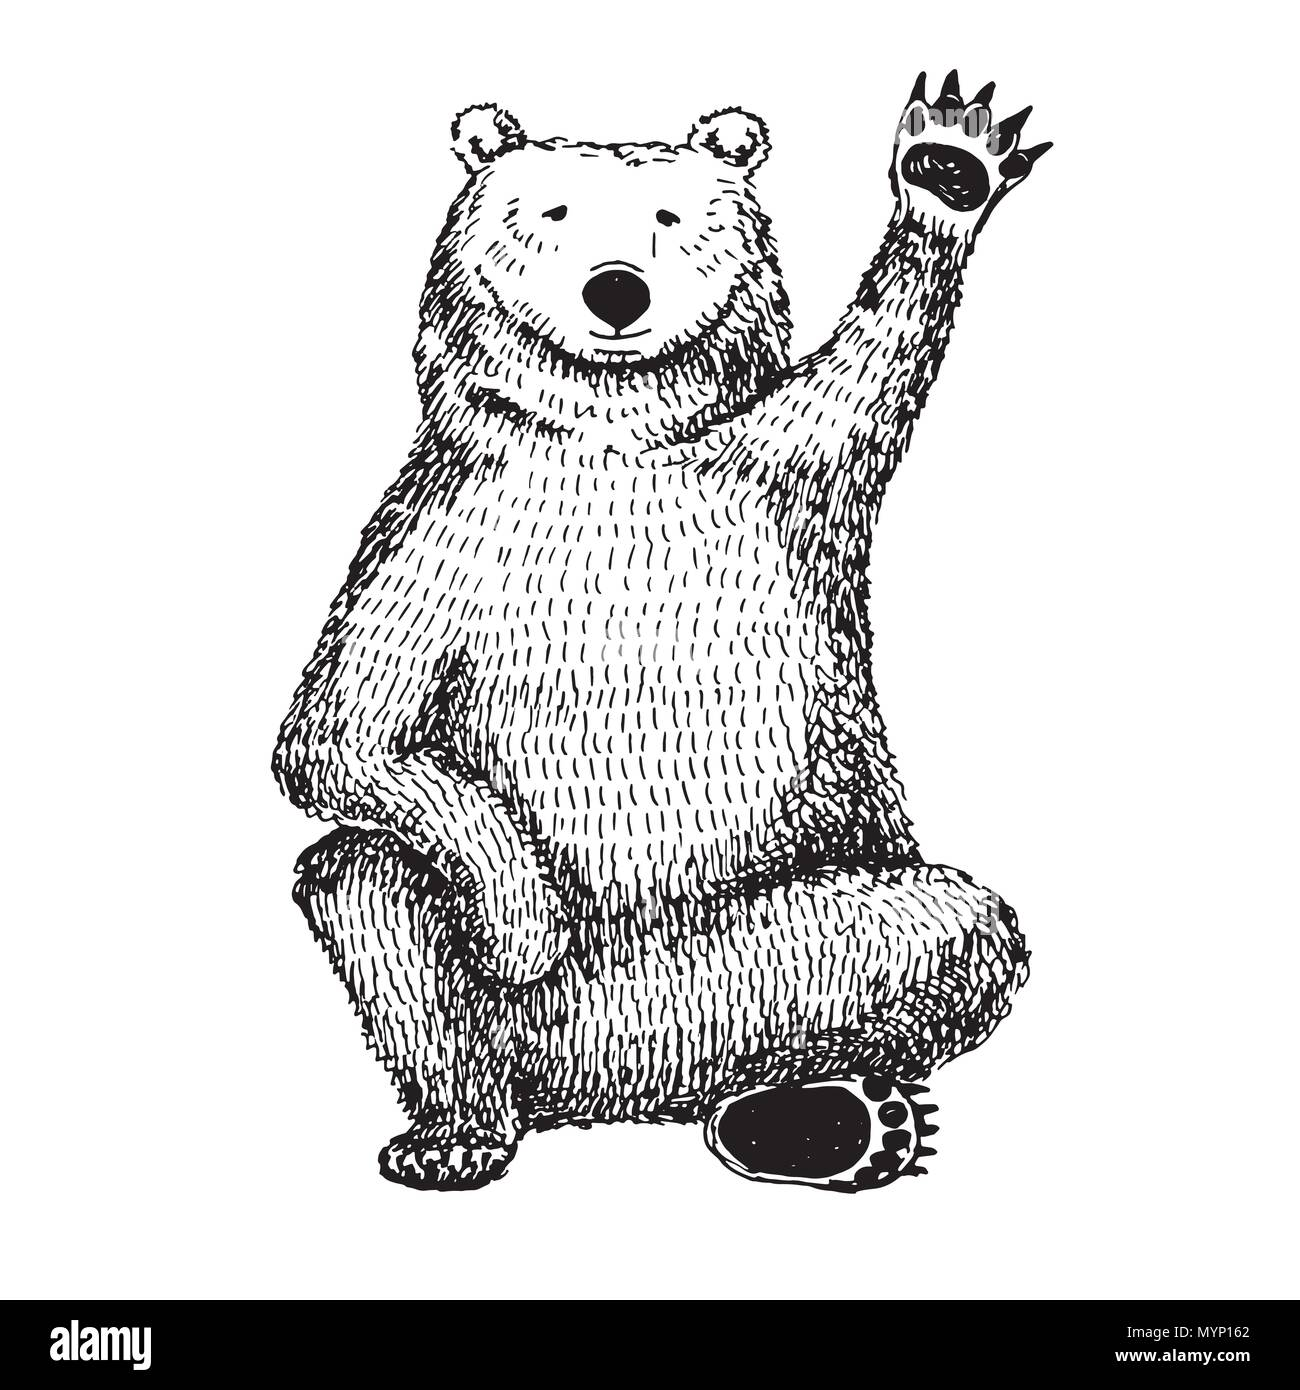 Sketch of a waving bear. Vector illustration. - Stock Image